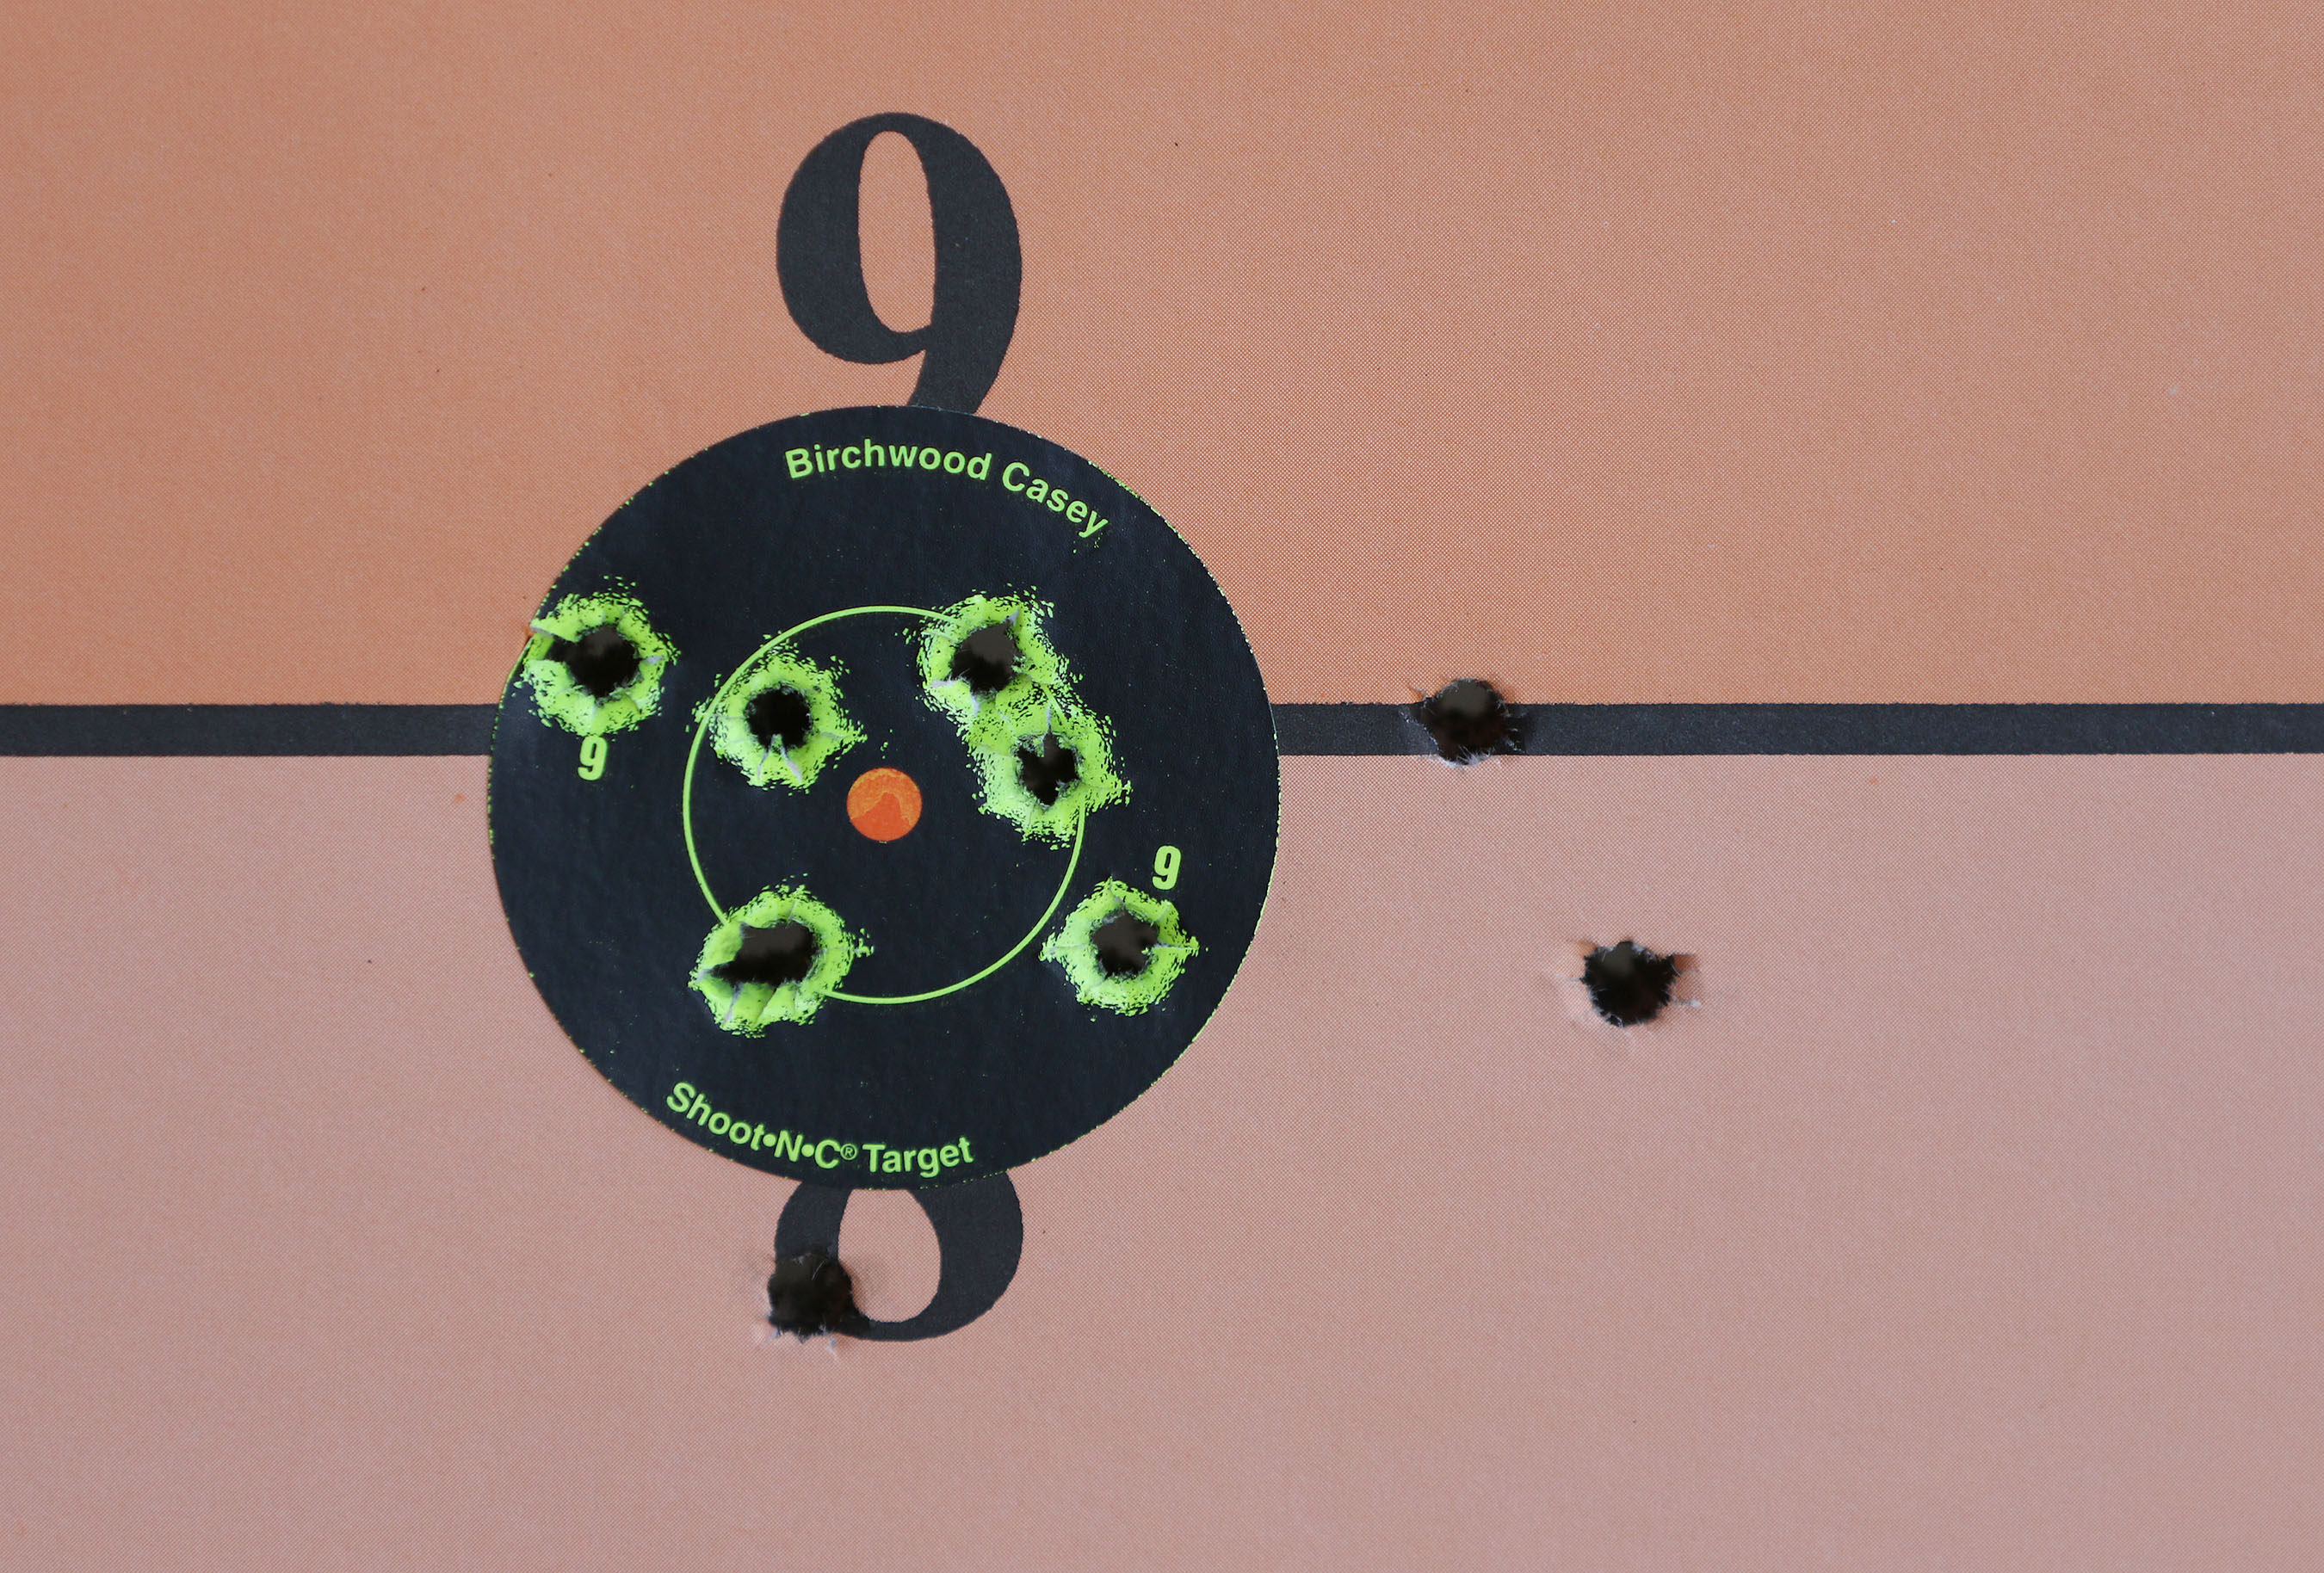 <p>A target bore evidence of some accurate shooting.</p>